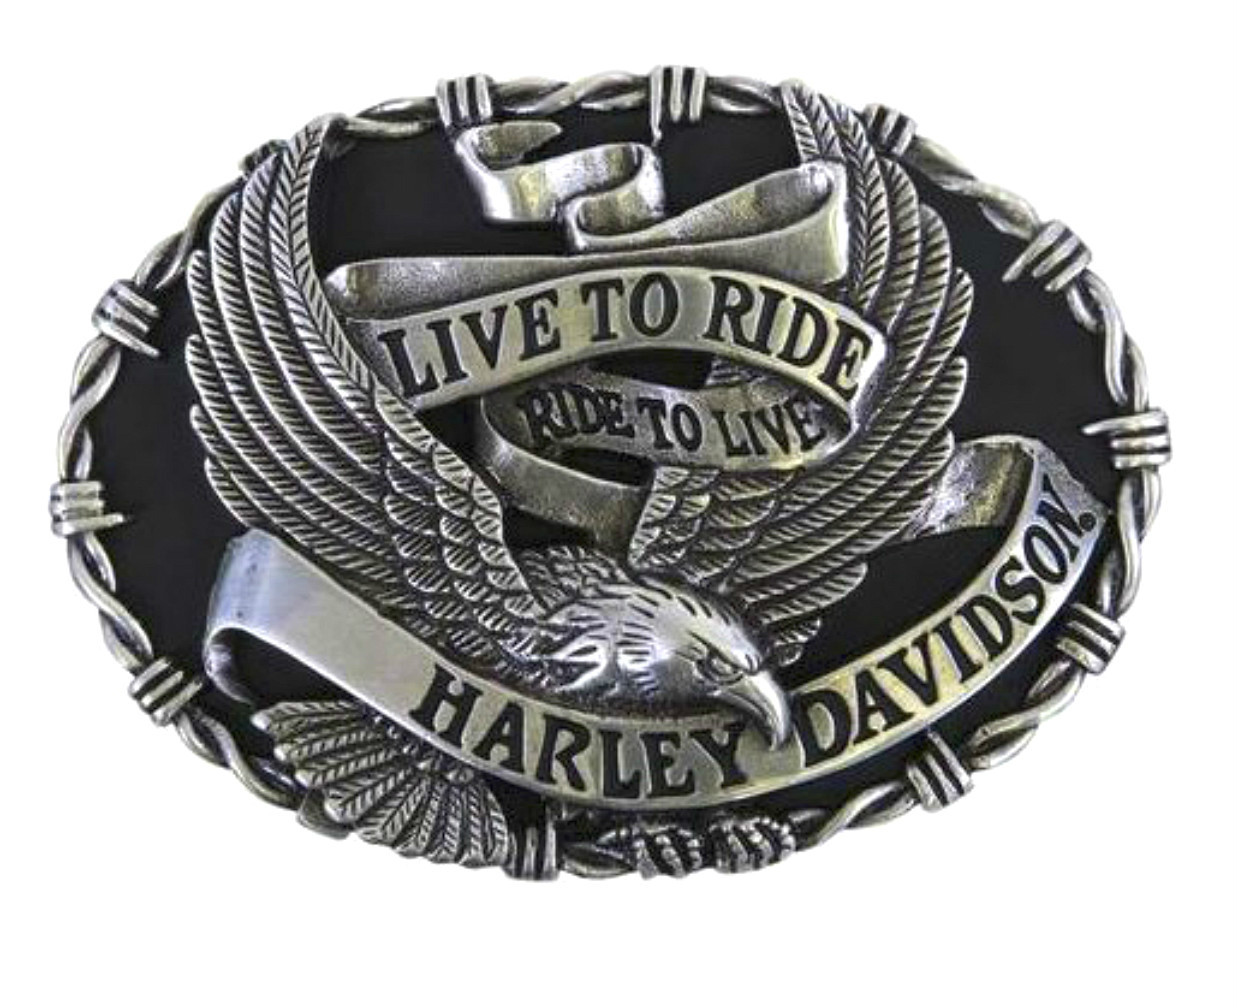 Harley-Davidson® Men's Breezer Belt Buckle | Live to Ride